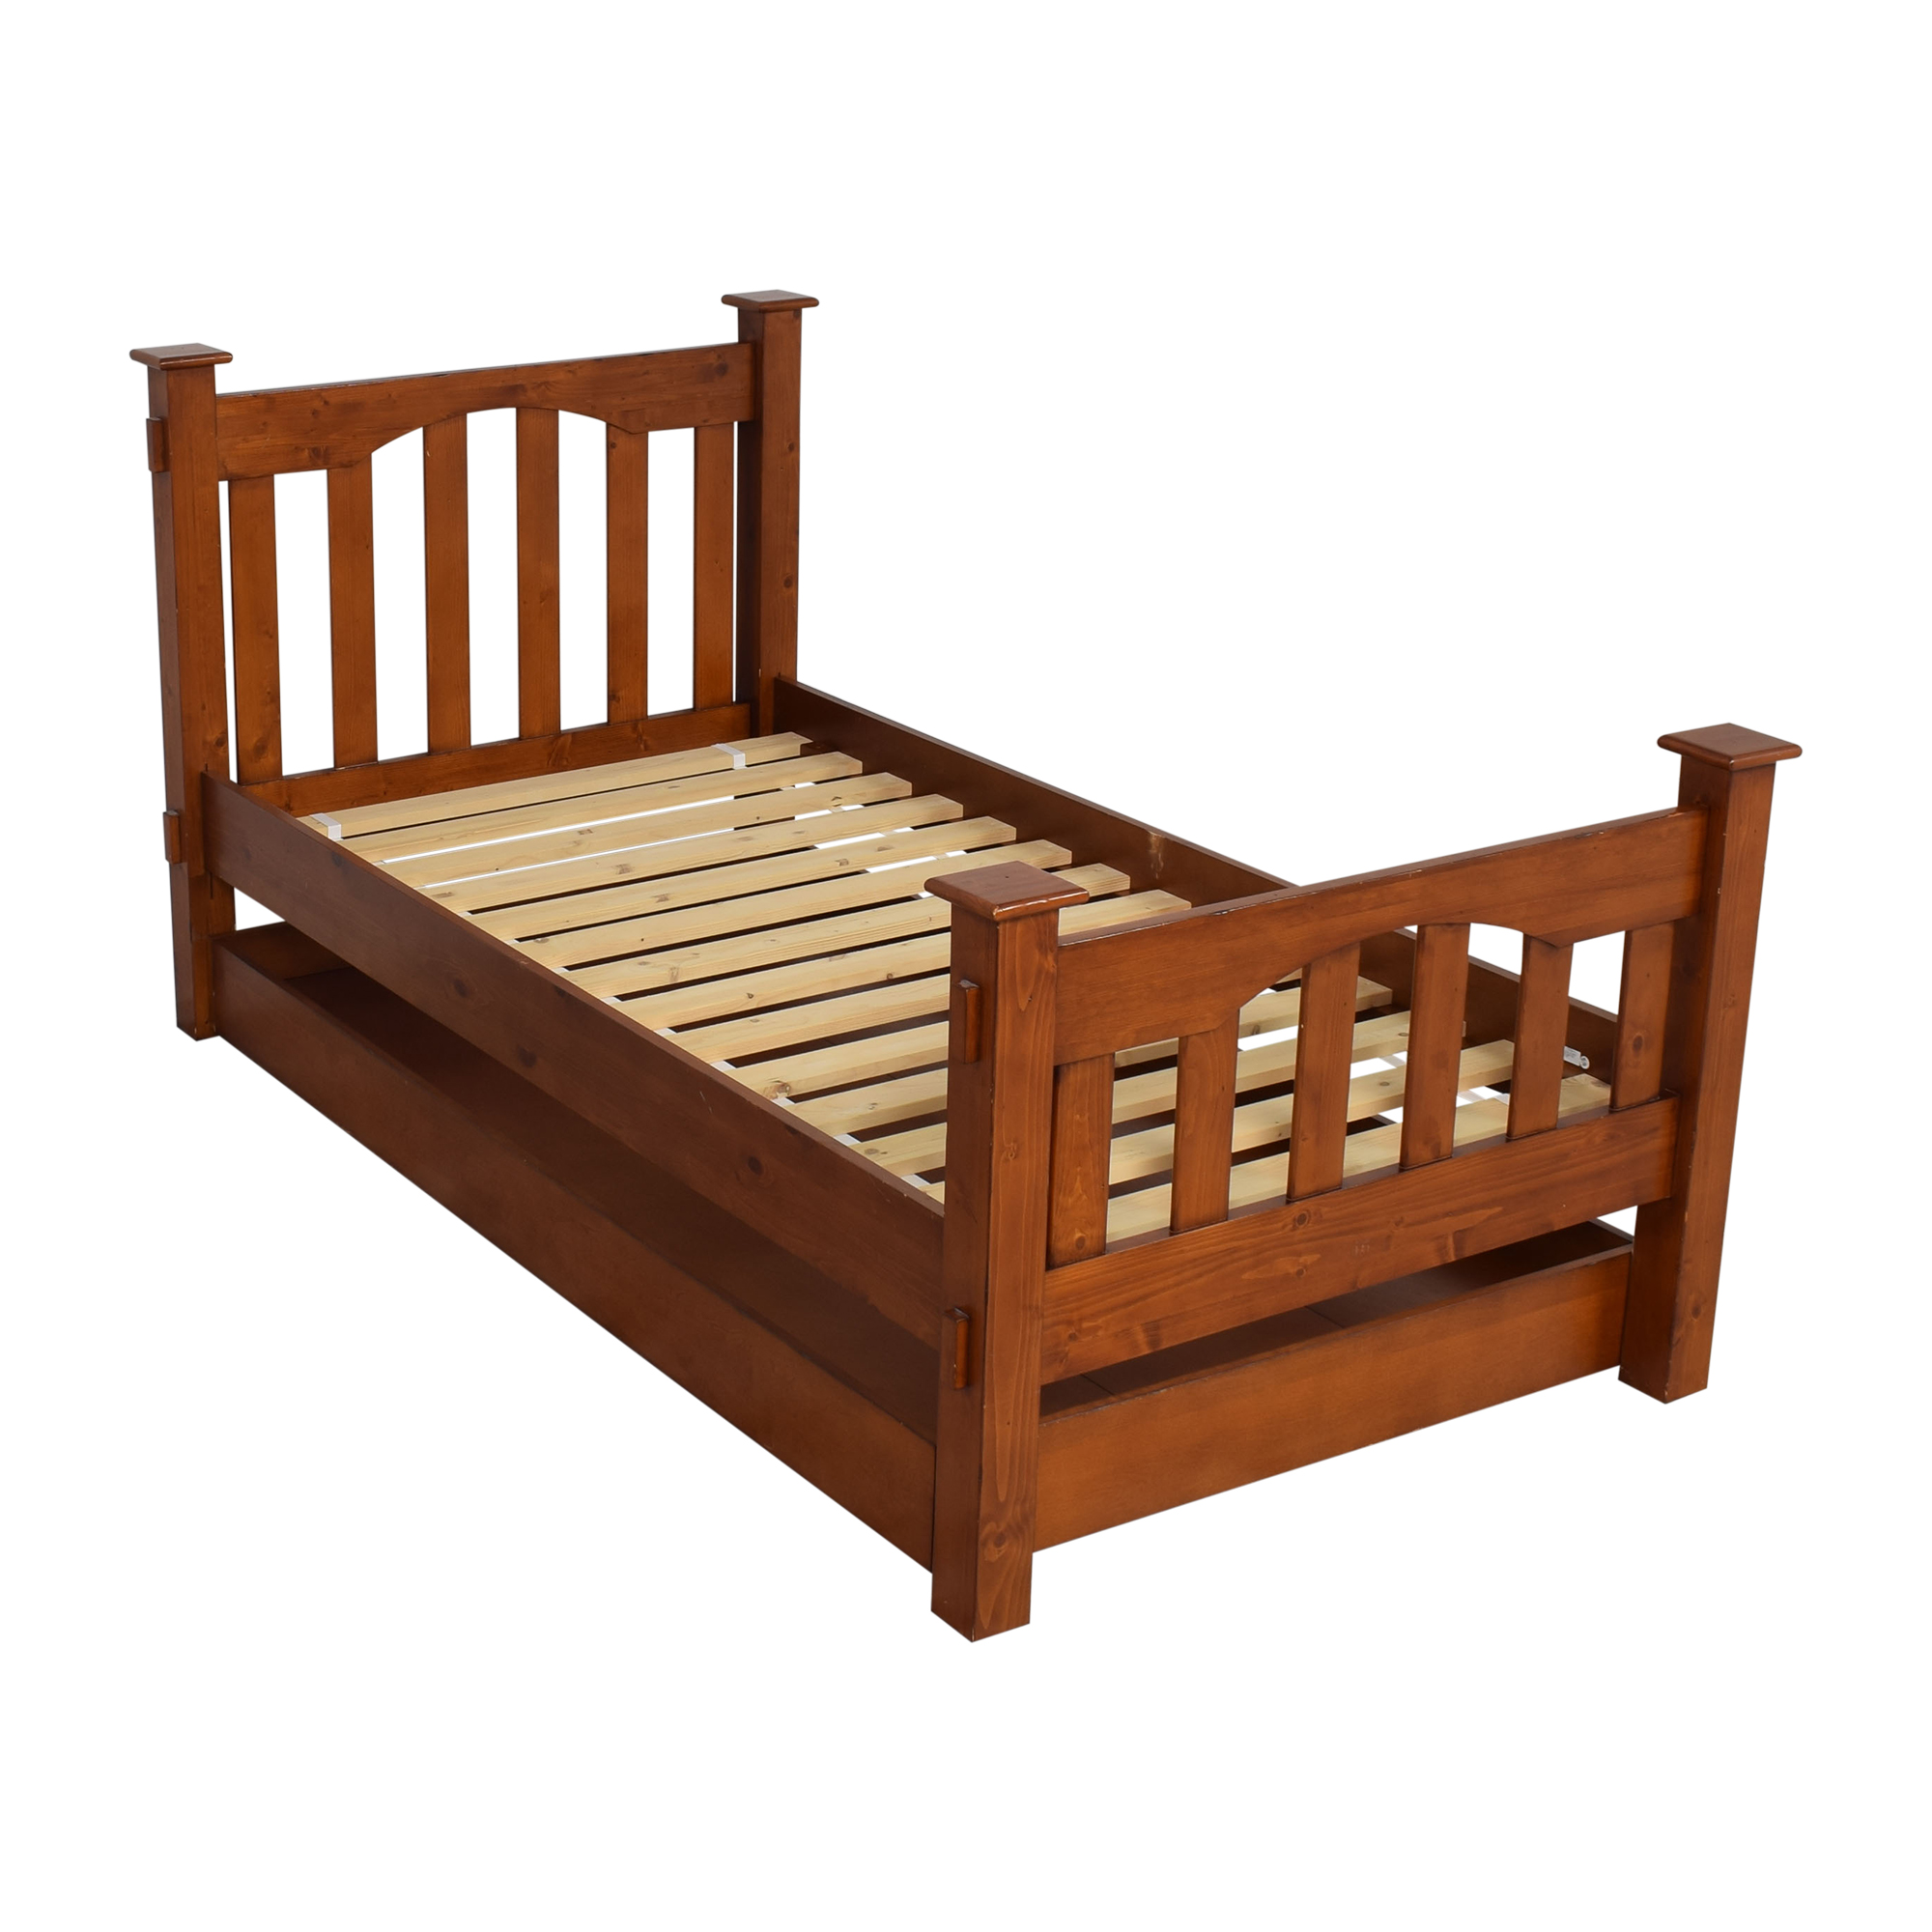 Pottery Barn Kids Pottery Barn Kids Kendall Twin Bed and Trundle discount